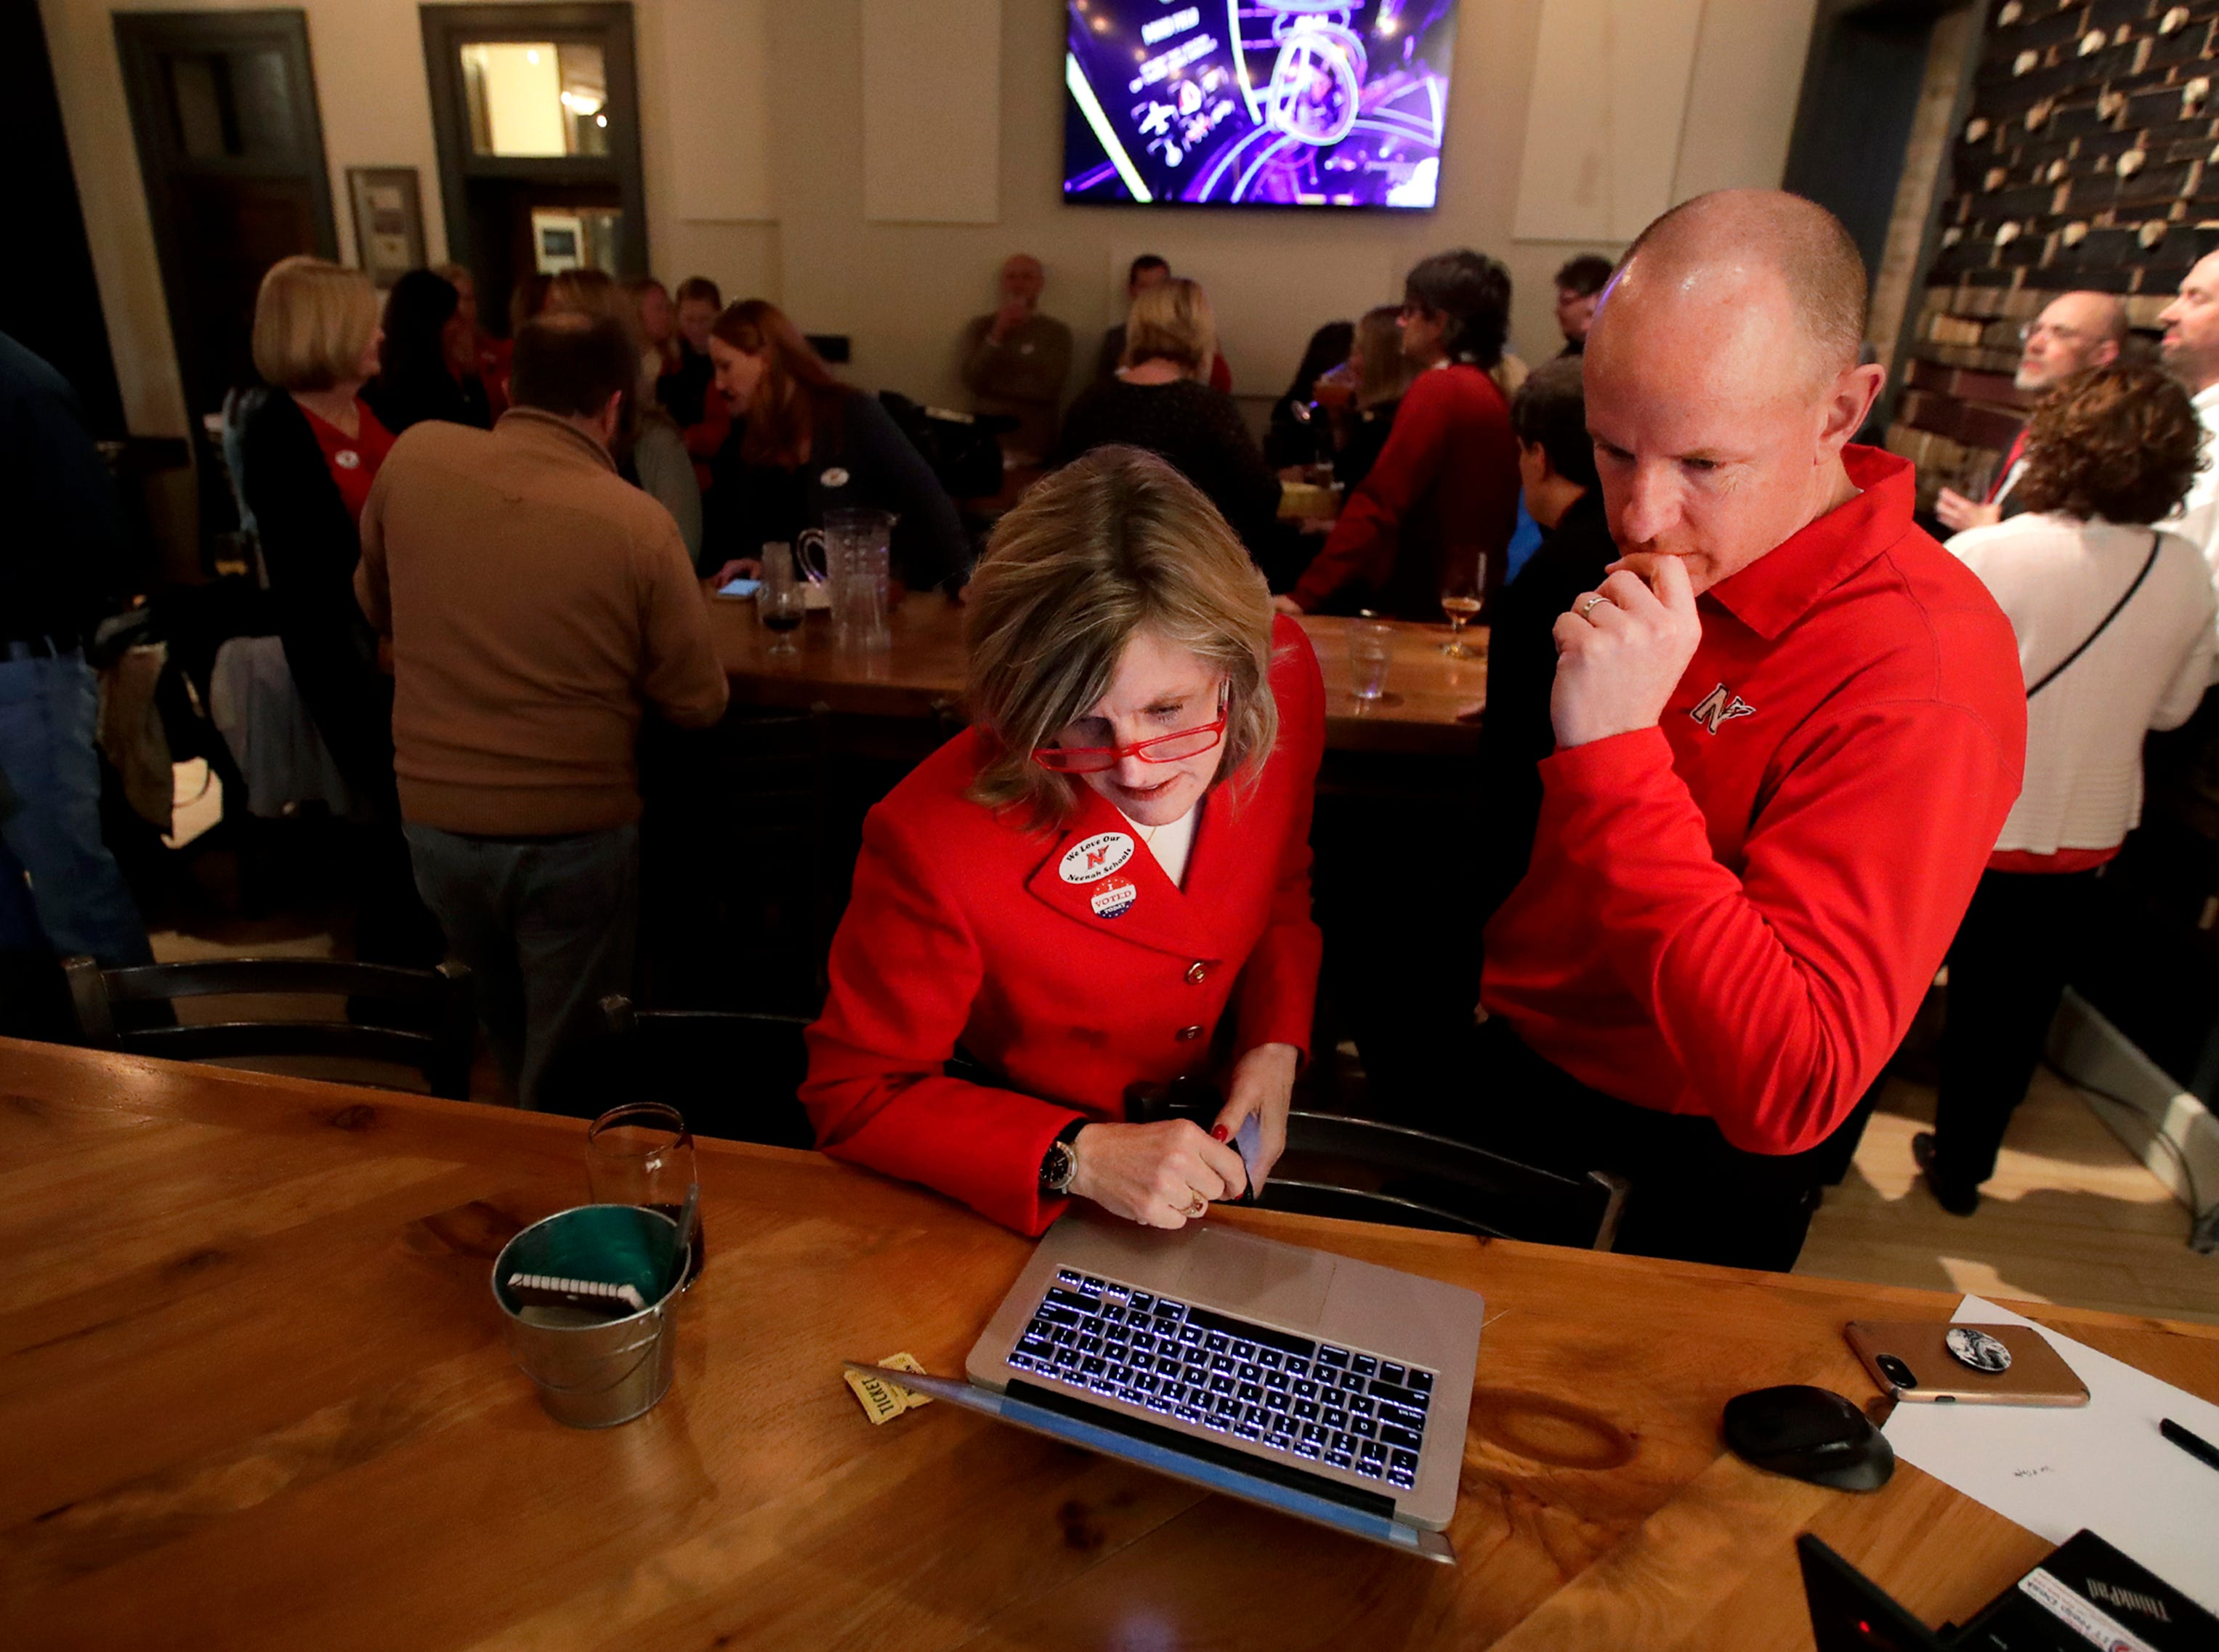 Mary Pfeiffer, Neenah Joint School District superintendent, and Jim Strick, Neenah Joint School District communications manager, watch as final referendum results are updated before Pfeiffer told supports that it didn't pass Tuesday, April 2, 2019, at Lion's Tail Brewing Co. in Neenah, Wis. The $129.6 million referendum lost by 497 votes and would have been the largest in the history of the fox cities.Danny Damiani/USA TODAY NETWORK-Wisconsin